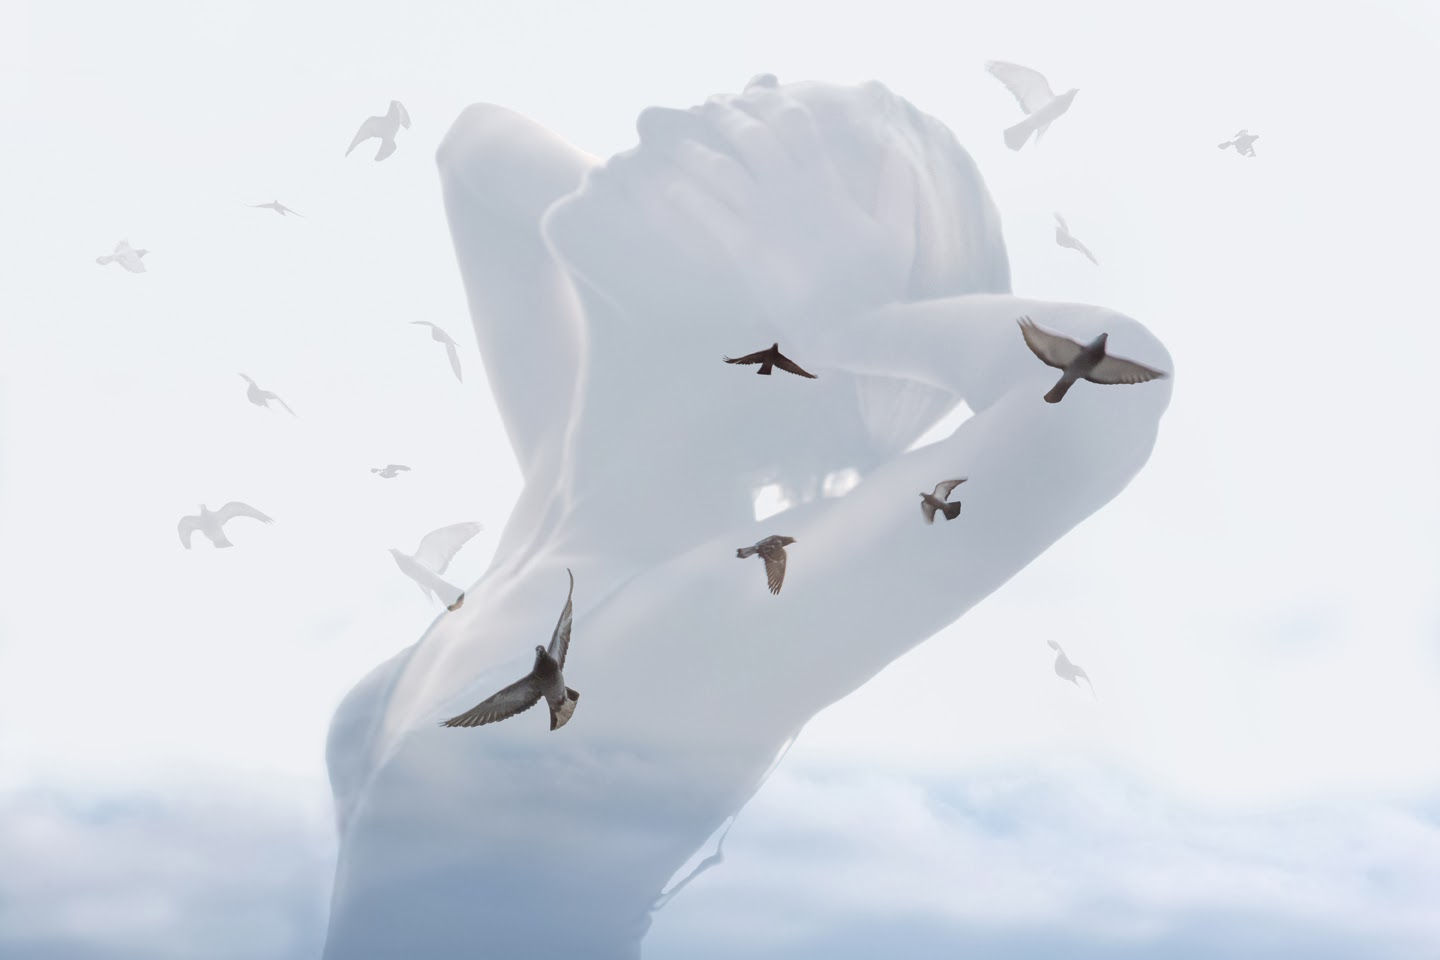 Double and multiple exposure in photography, birds flying, freedom in me, Nina Sinitskaya, double exposure girl, doves flying